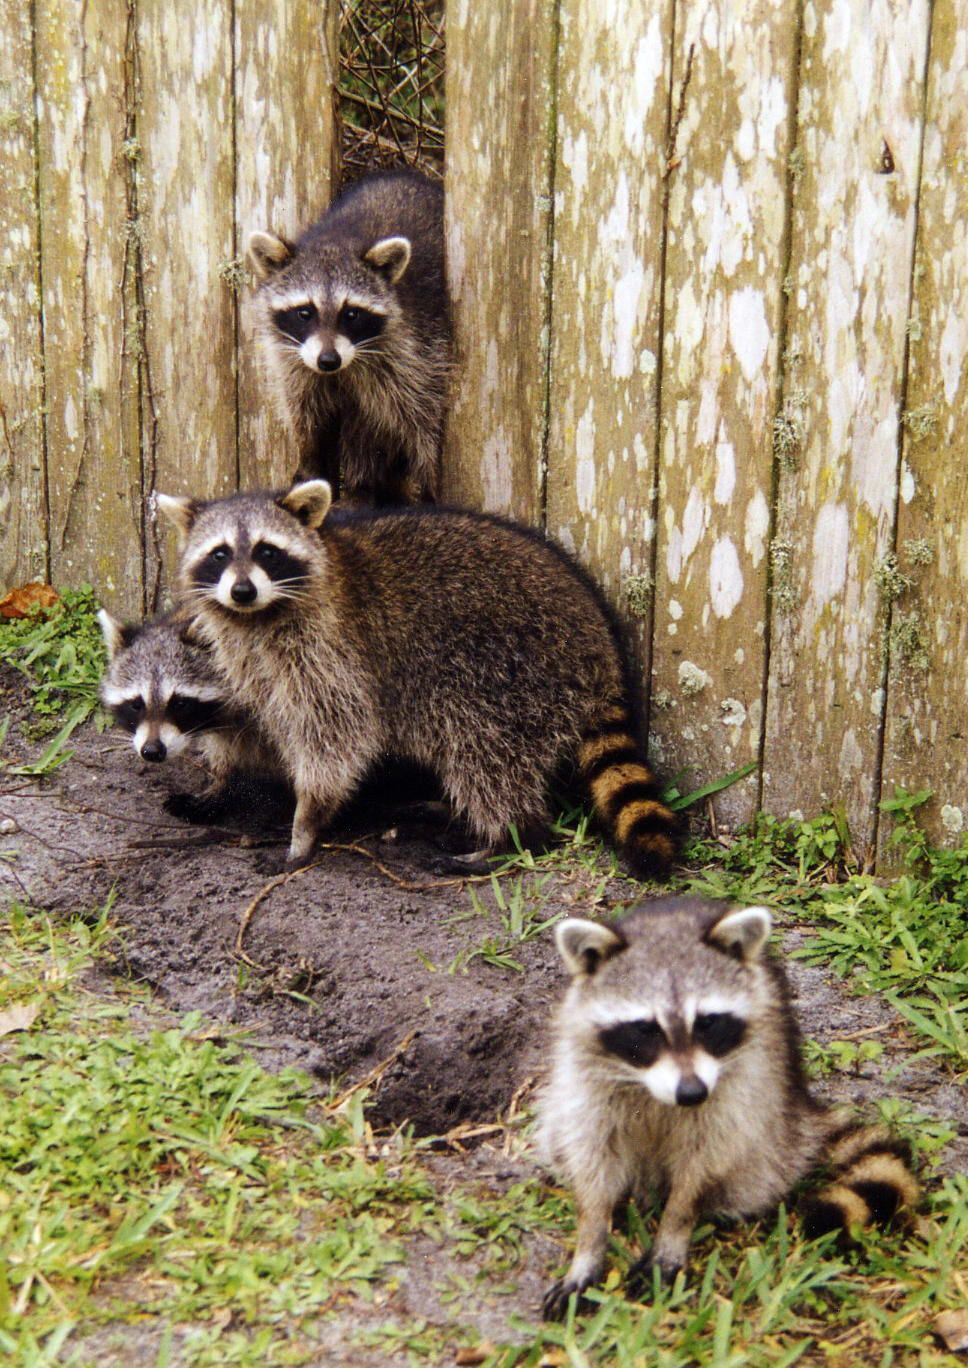 raccoons just come out at night will tear up the garbage if you